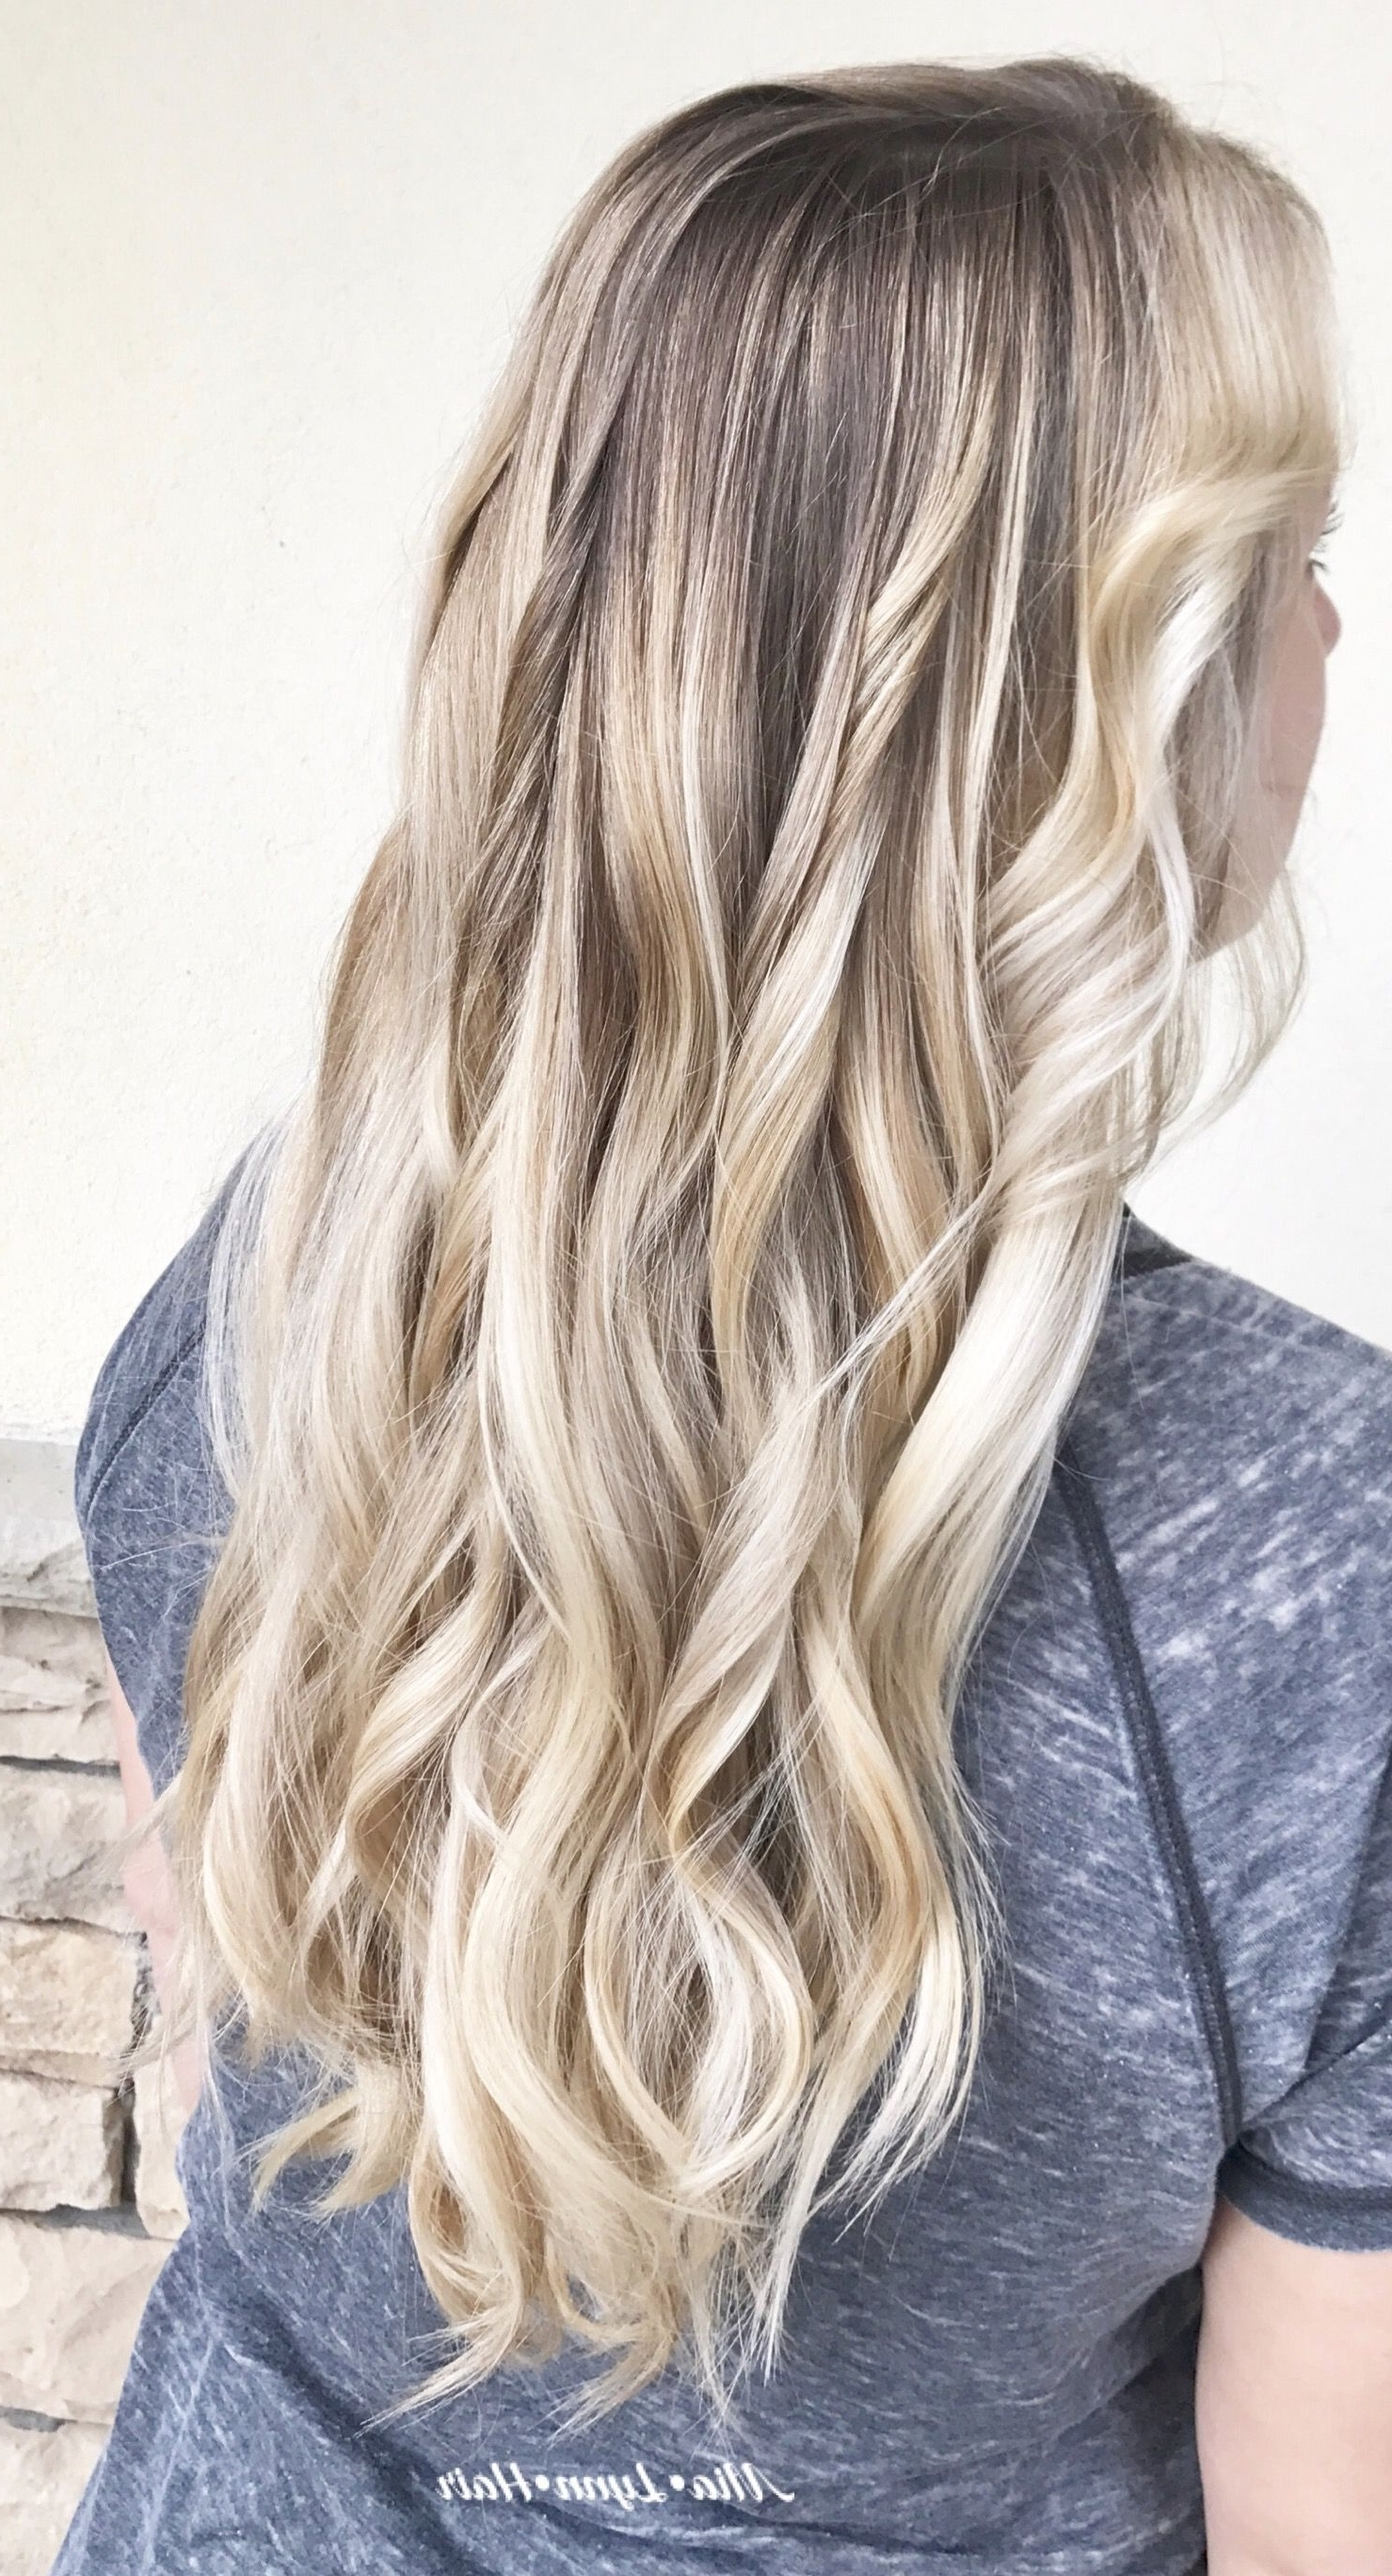 Most Popular Icy Ombre Waves Blonde Hairstyles Throughout Blonde Hair, Blonde, Waves, Painted Hair, Blonde Balayage, Sombre (View 5 of 20)